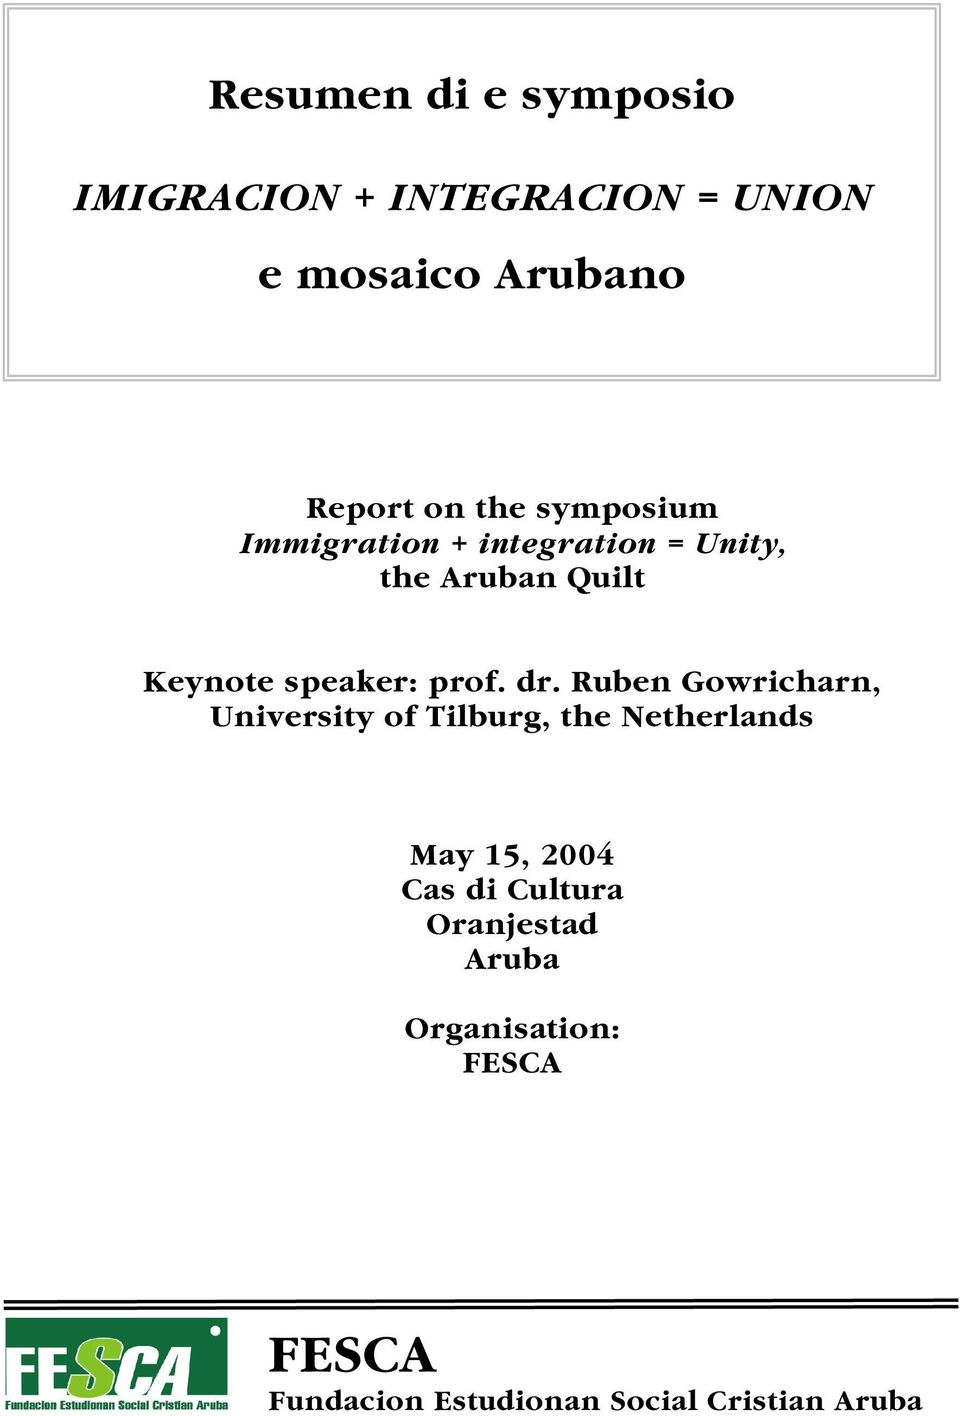 dr. Ruben Gowricharn, University of Tilburg, the Netherlands May 15, 2004 Cas di